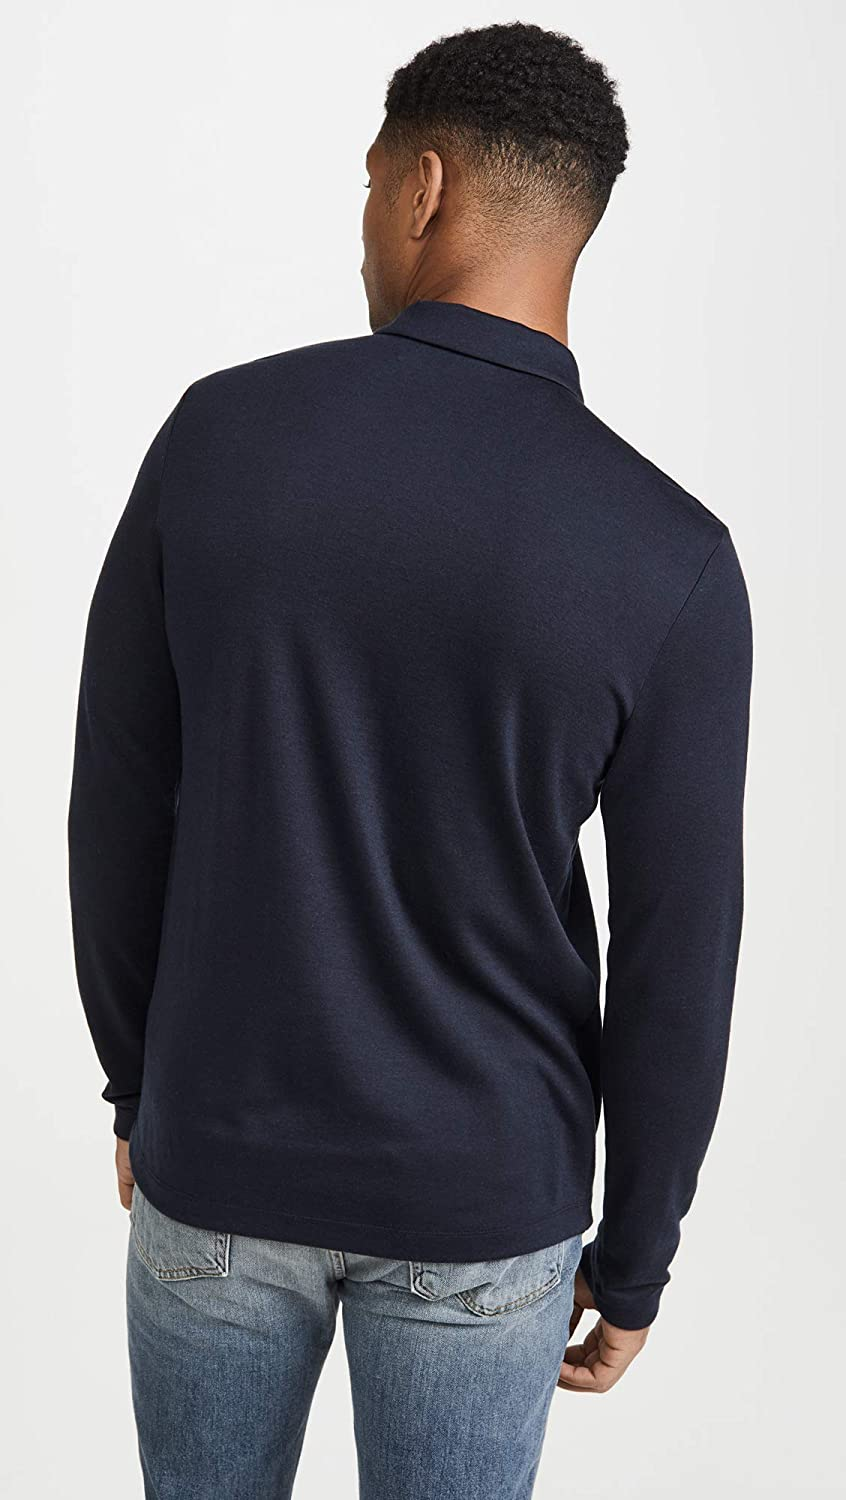 Theory Mens Cashmere Blend Long Sleeve Polo Shirt